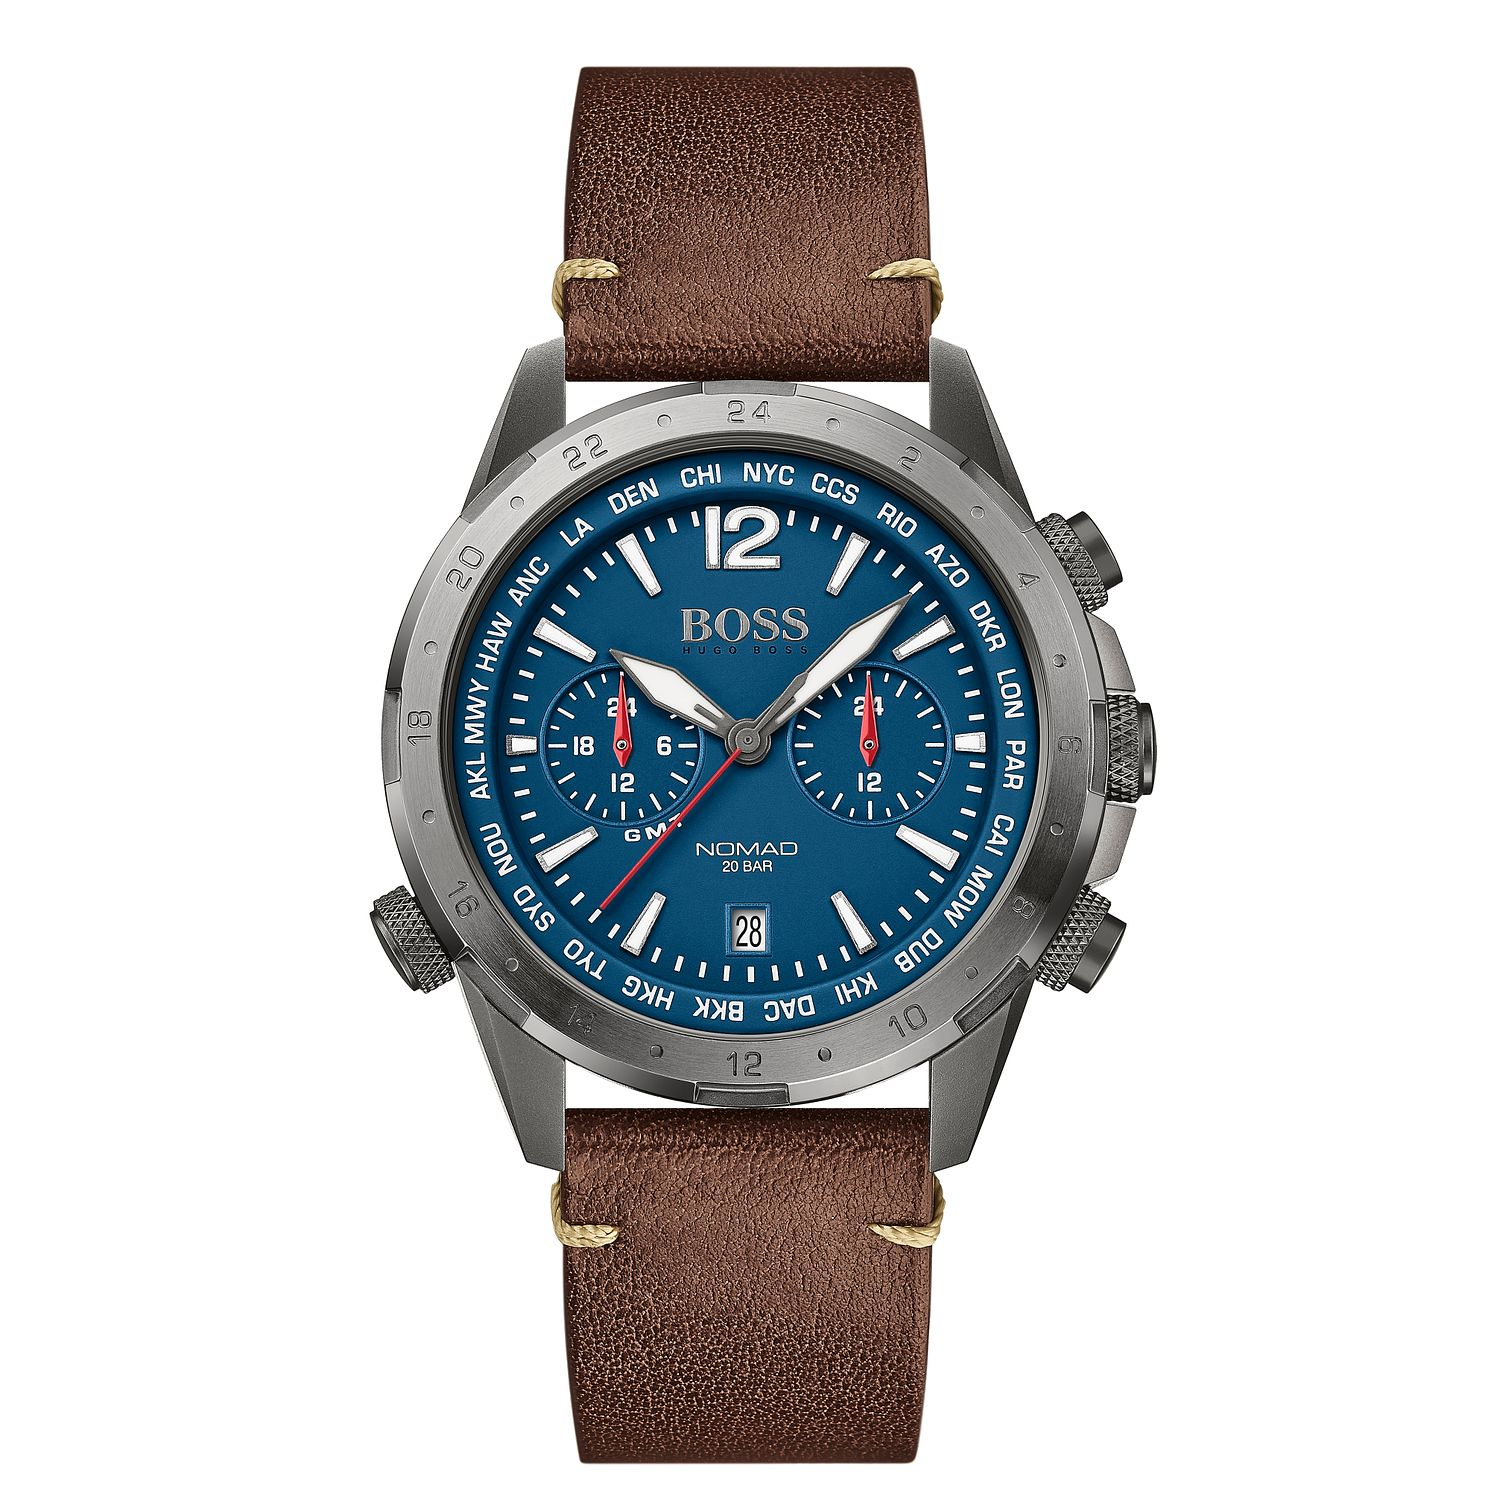 BOSS Nomad Men's Brown Leather Strap Watch - Product number 4770838